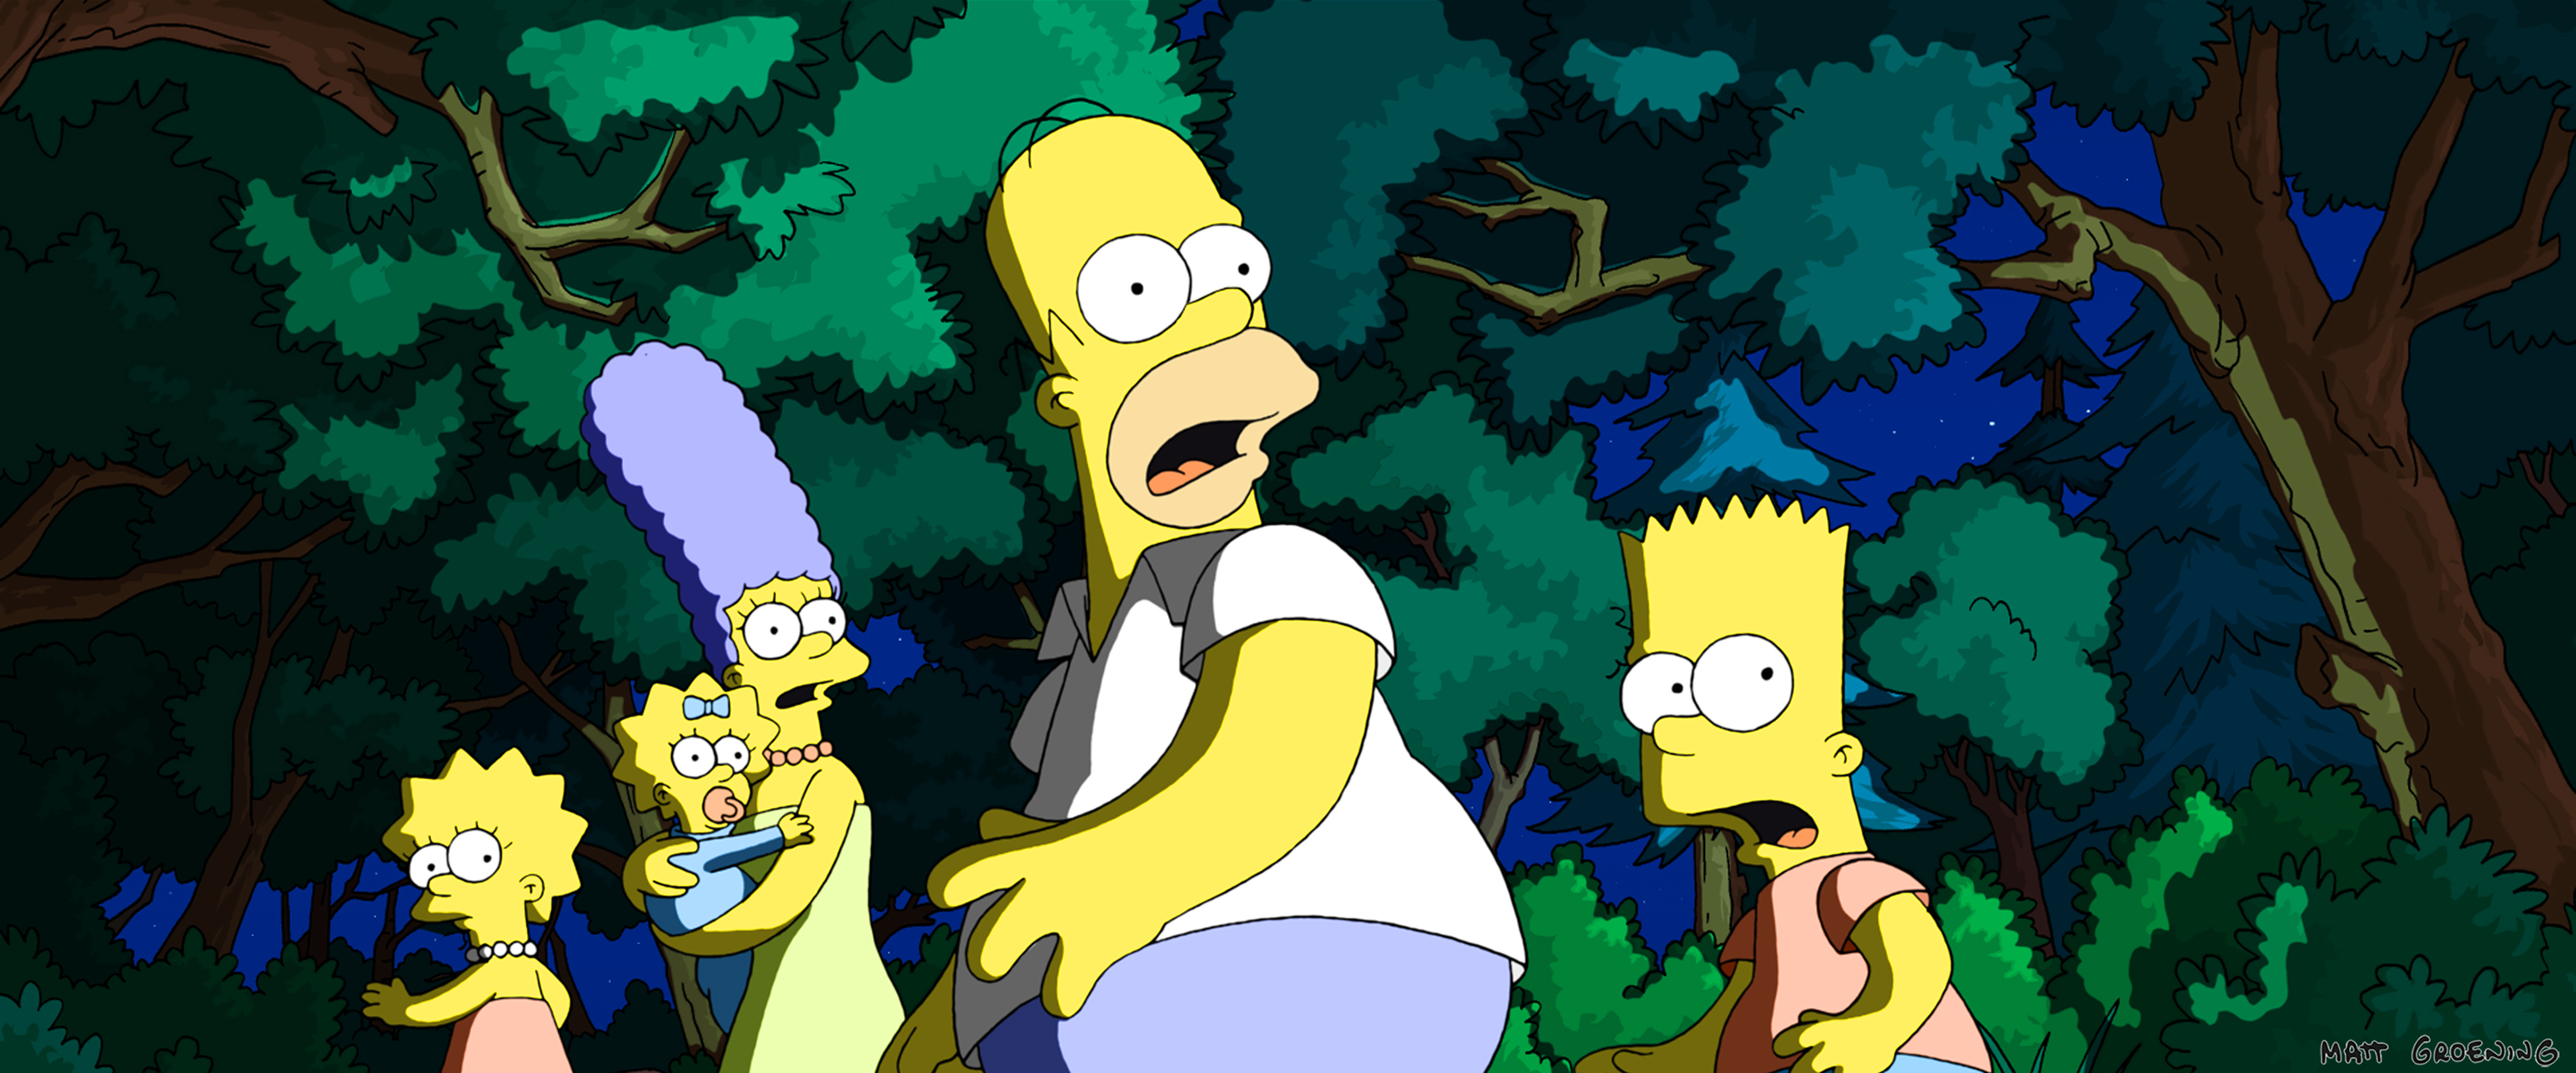 The Simpsons Is Streaming On Disney In The Wrong Aspect Ratio Indiewire